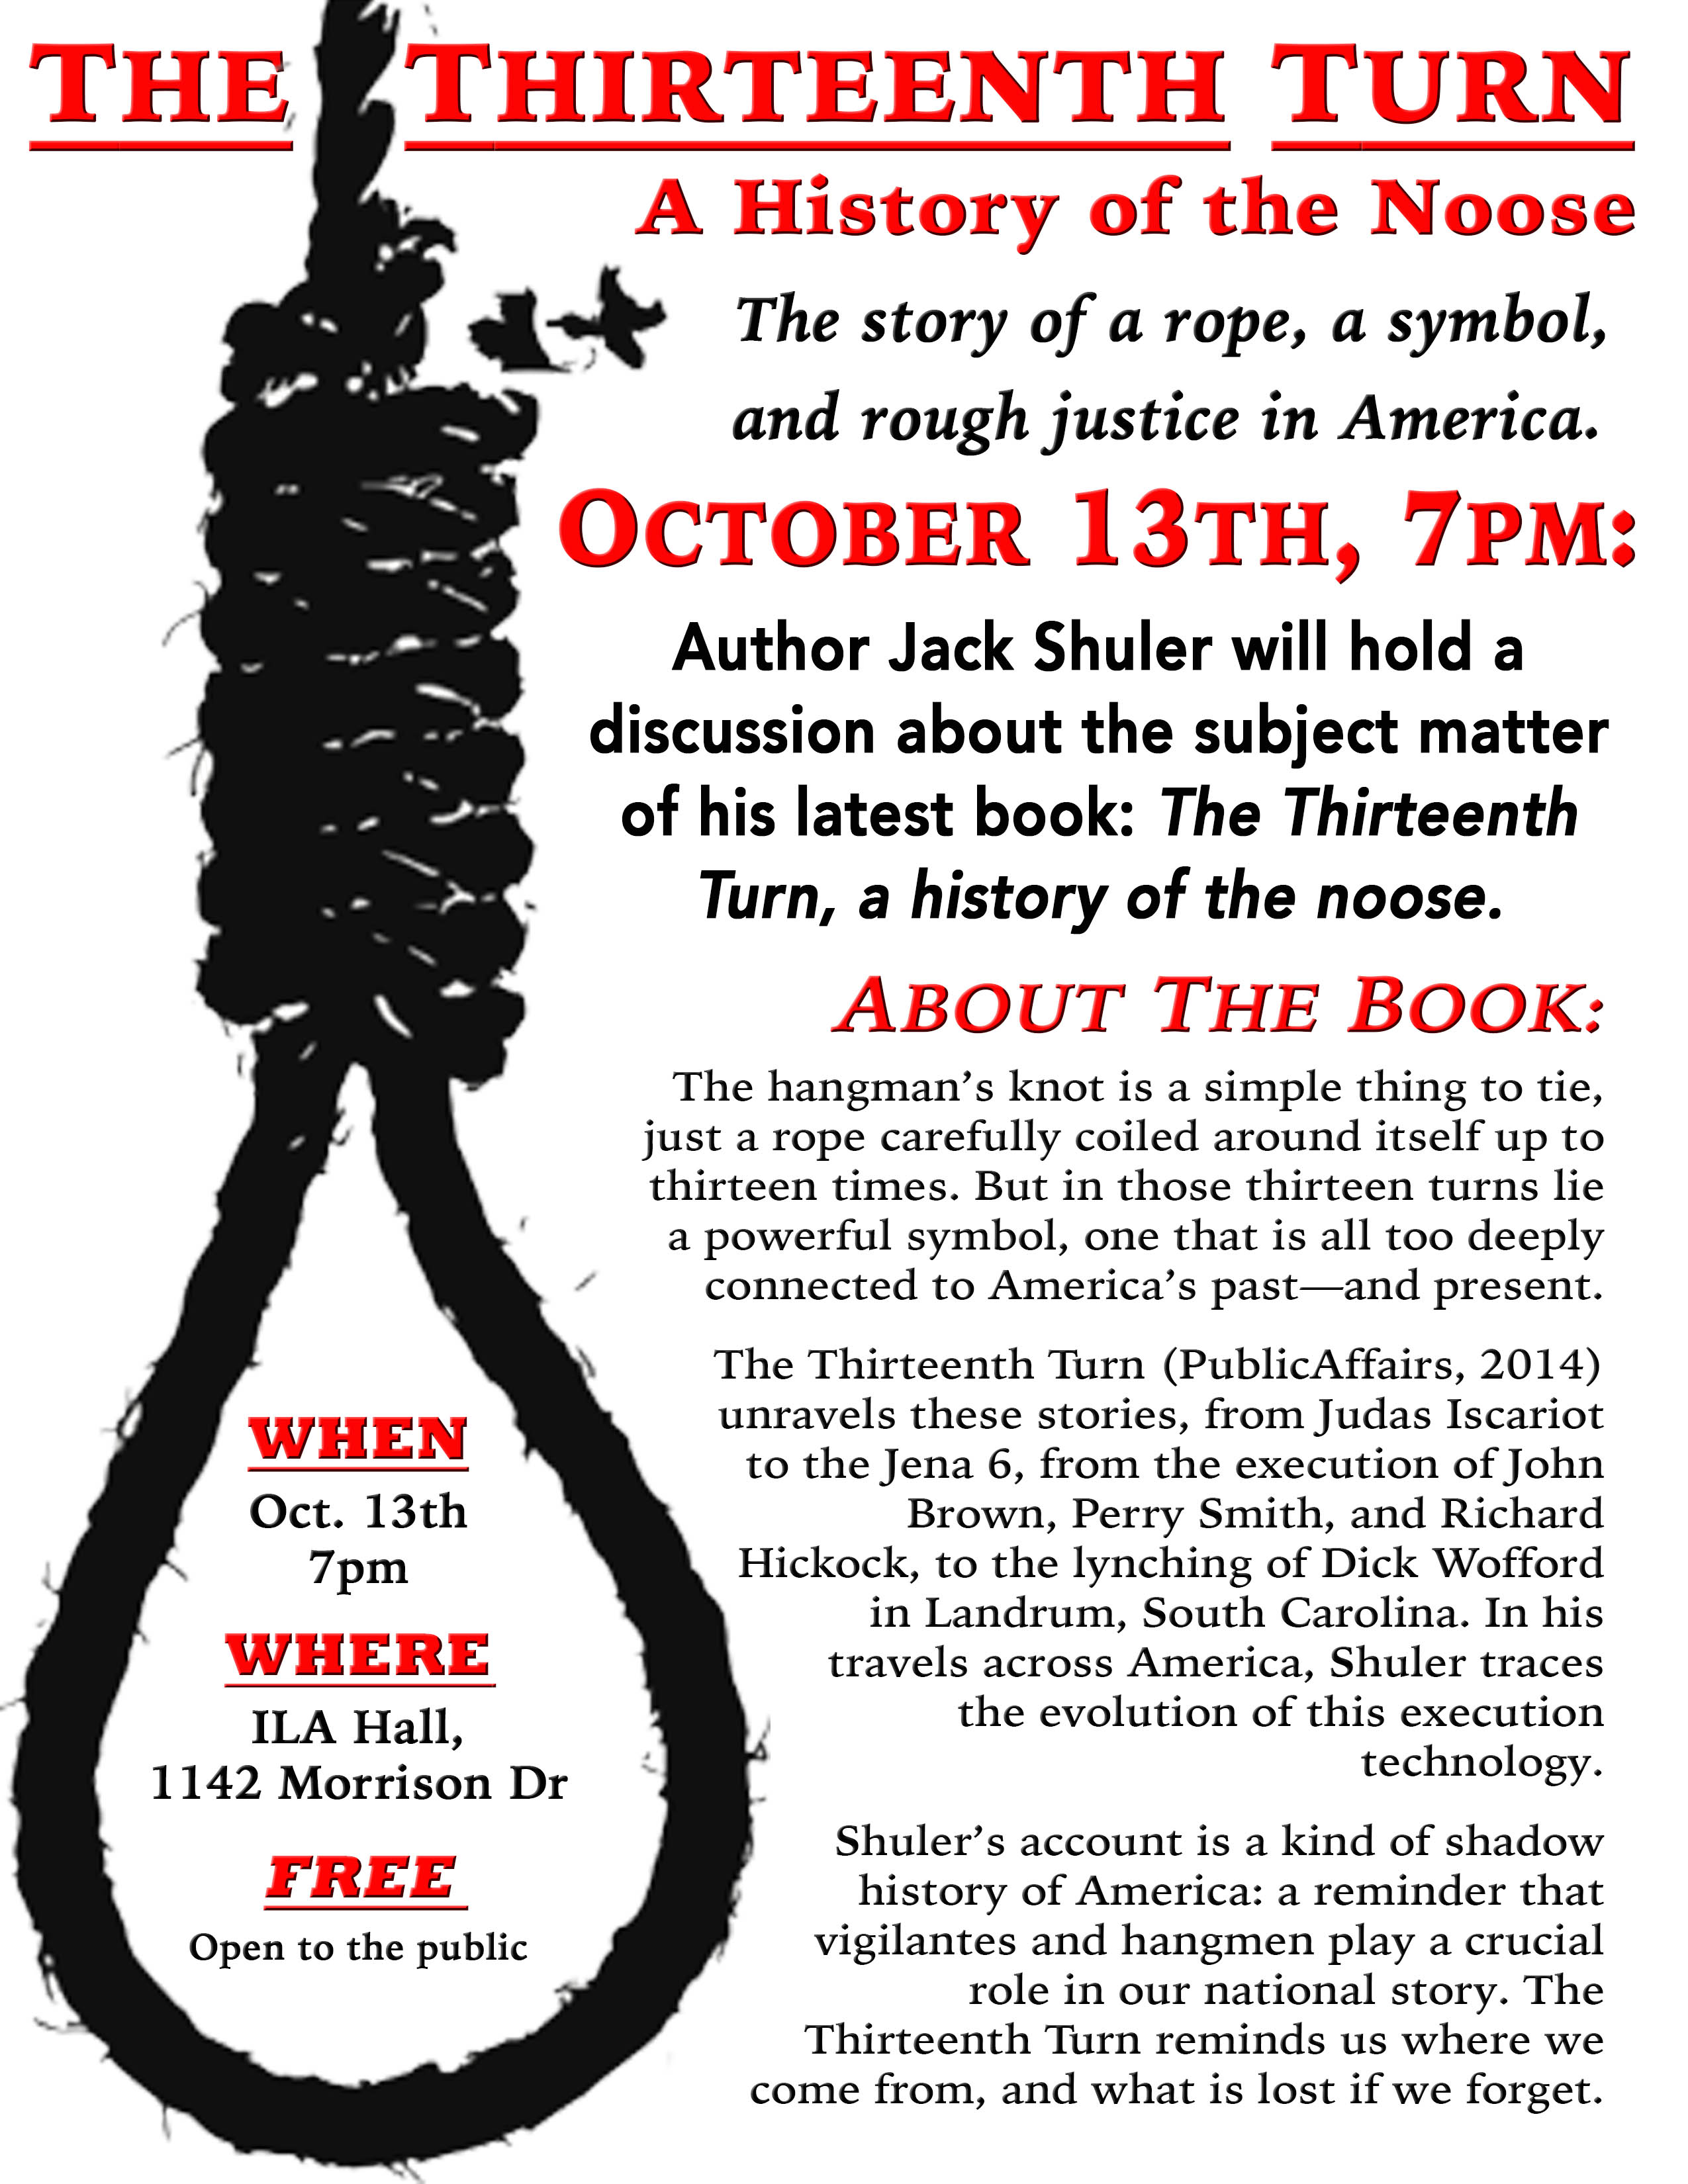 Department Of History A History Of The Noose Today At 7pm